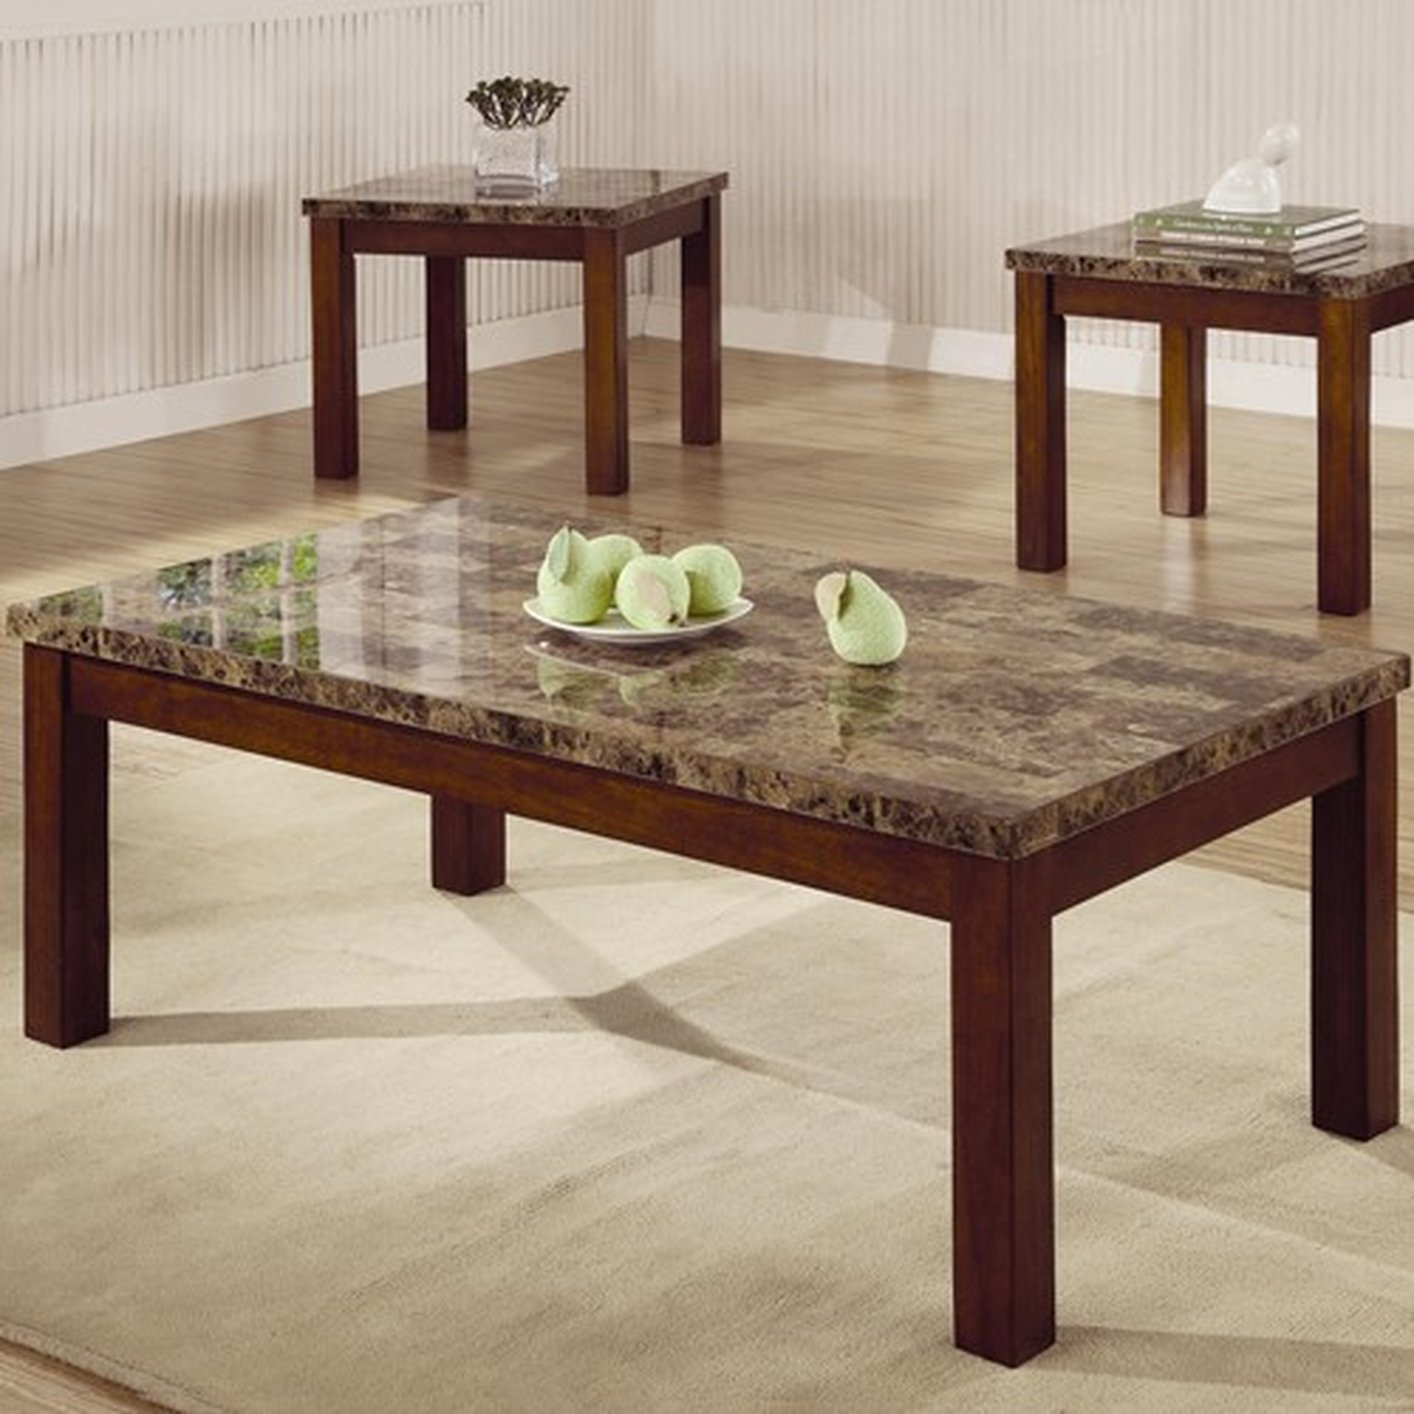 Marble Coffee Table Online: Brown Marble Coffee Table Set